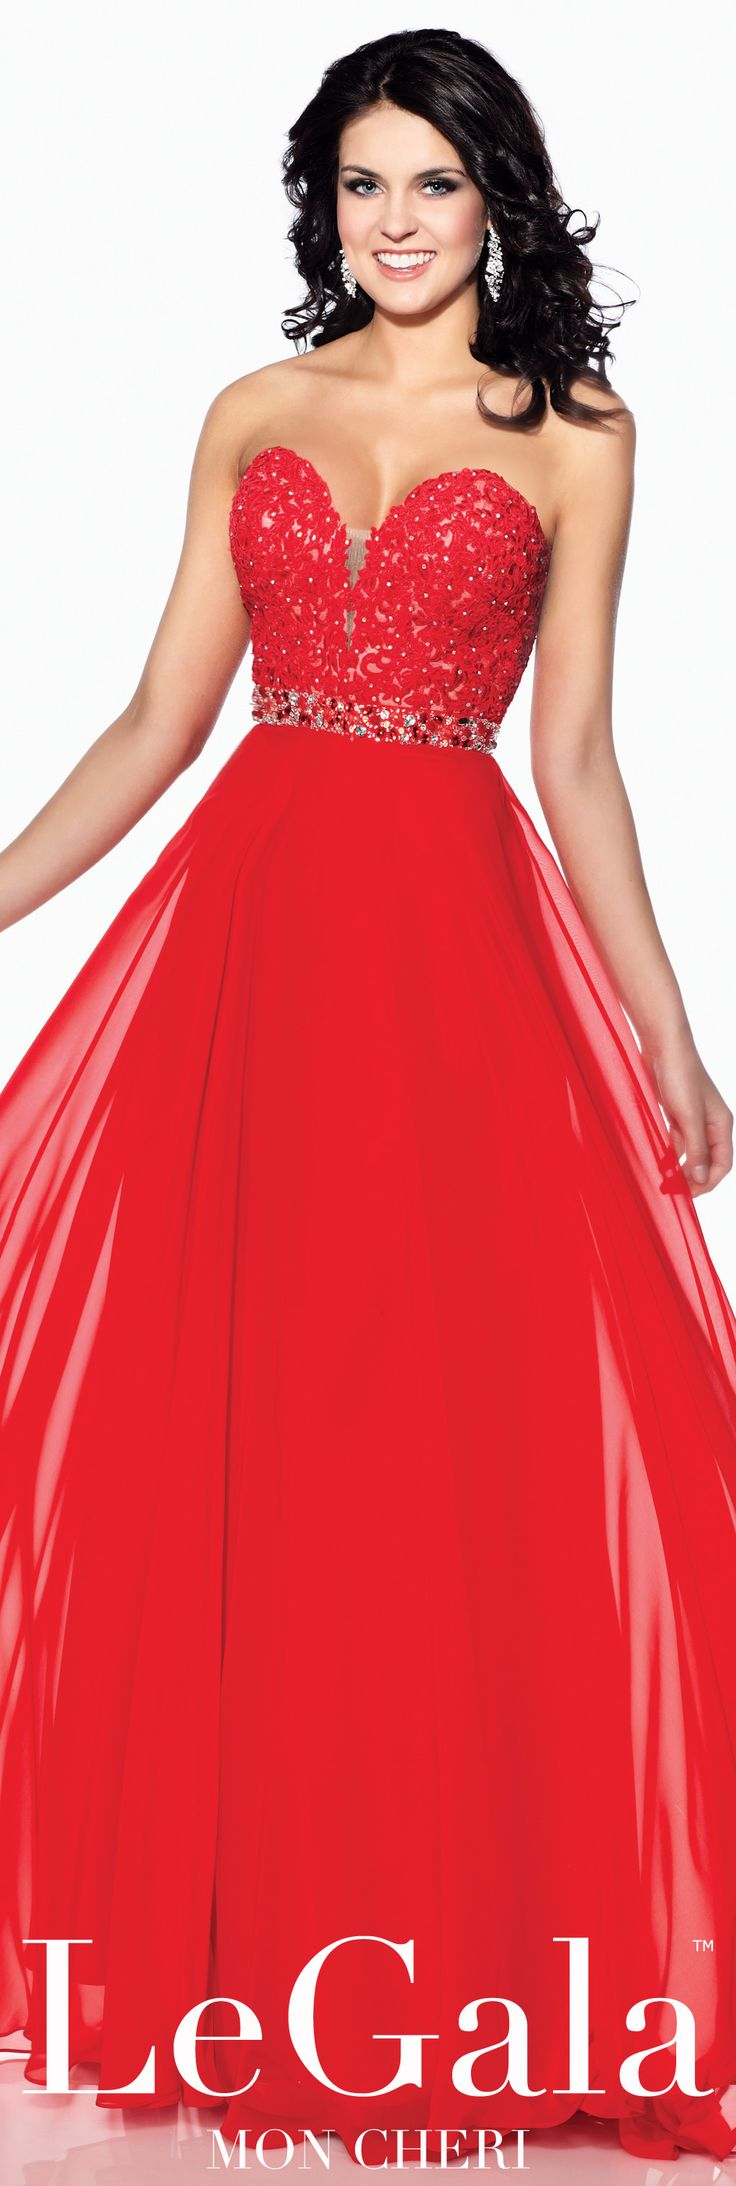 Spring 2016 Prom Dress by Le Gala by Mon Cheri style 116507 #promdresses